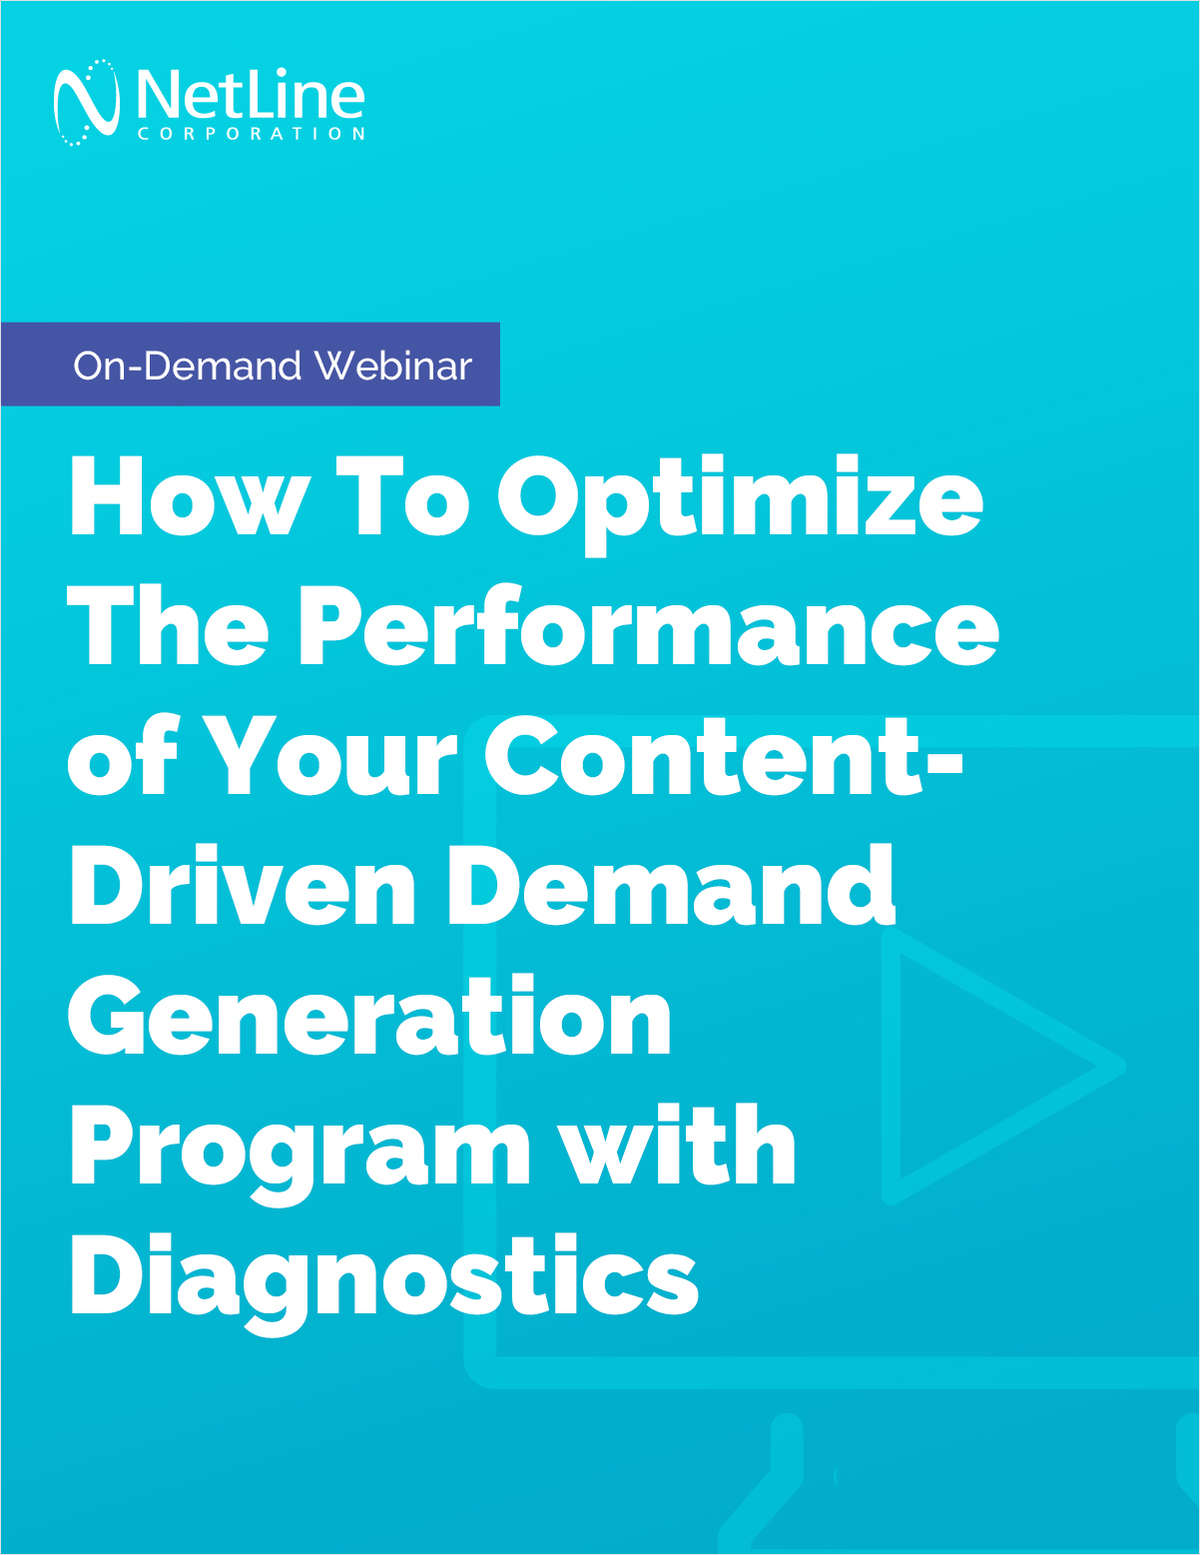 How To Optimize The Performance of Your Content-Driven Demand Generation Program with Diagnostics